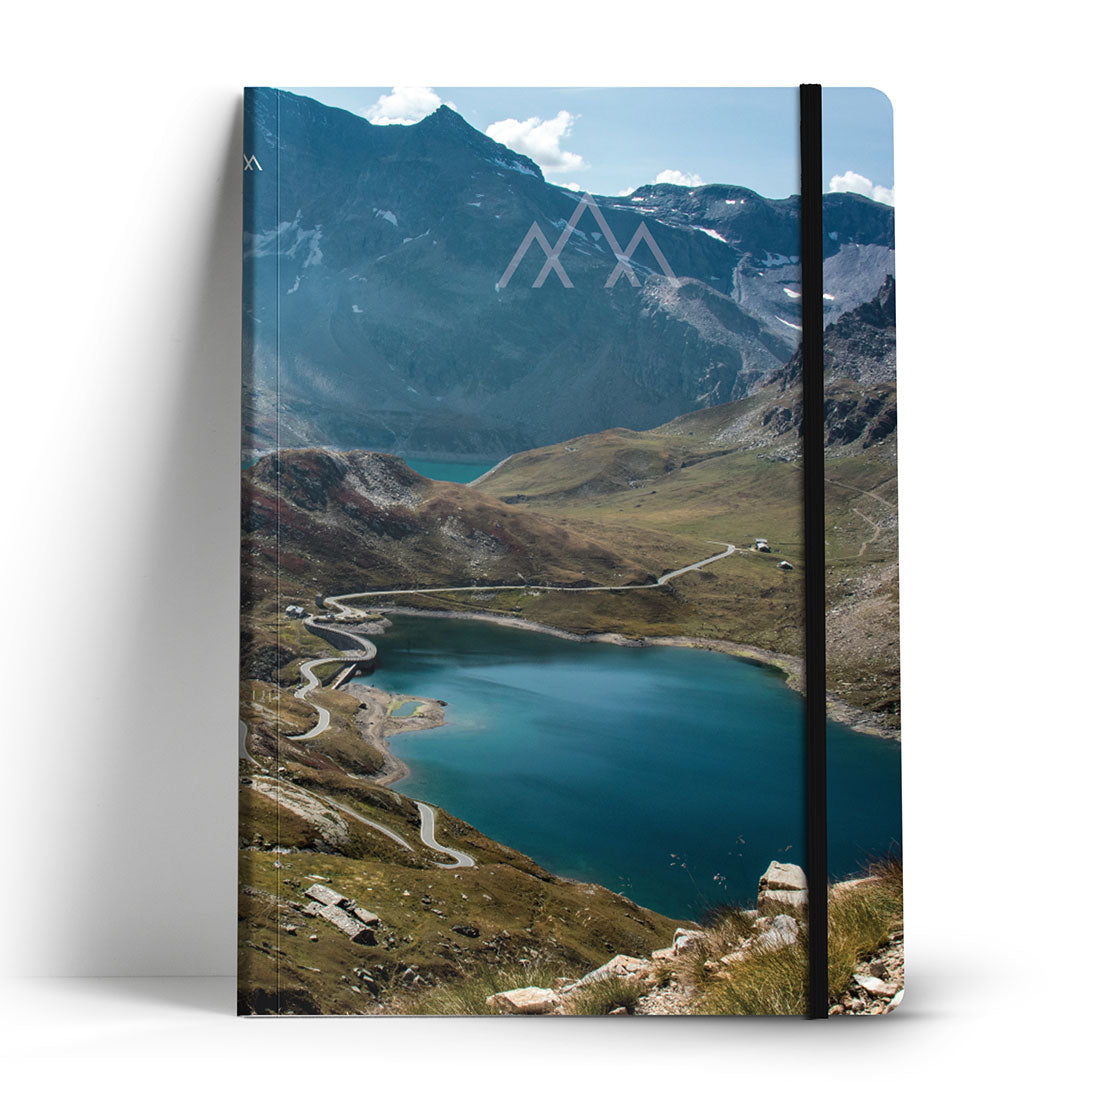 Colle del Nivolet Notebook